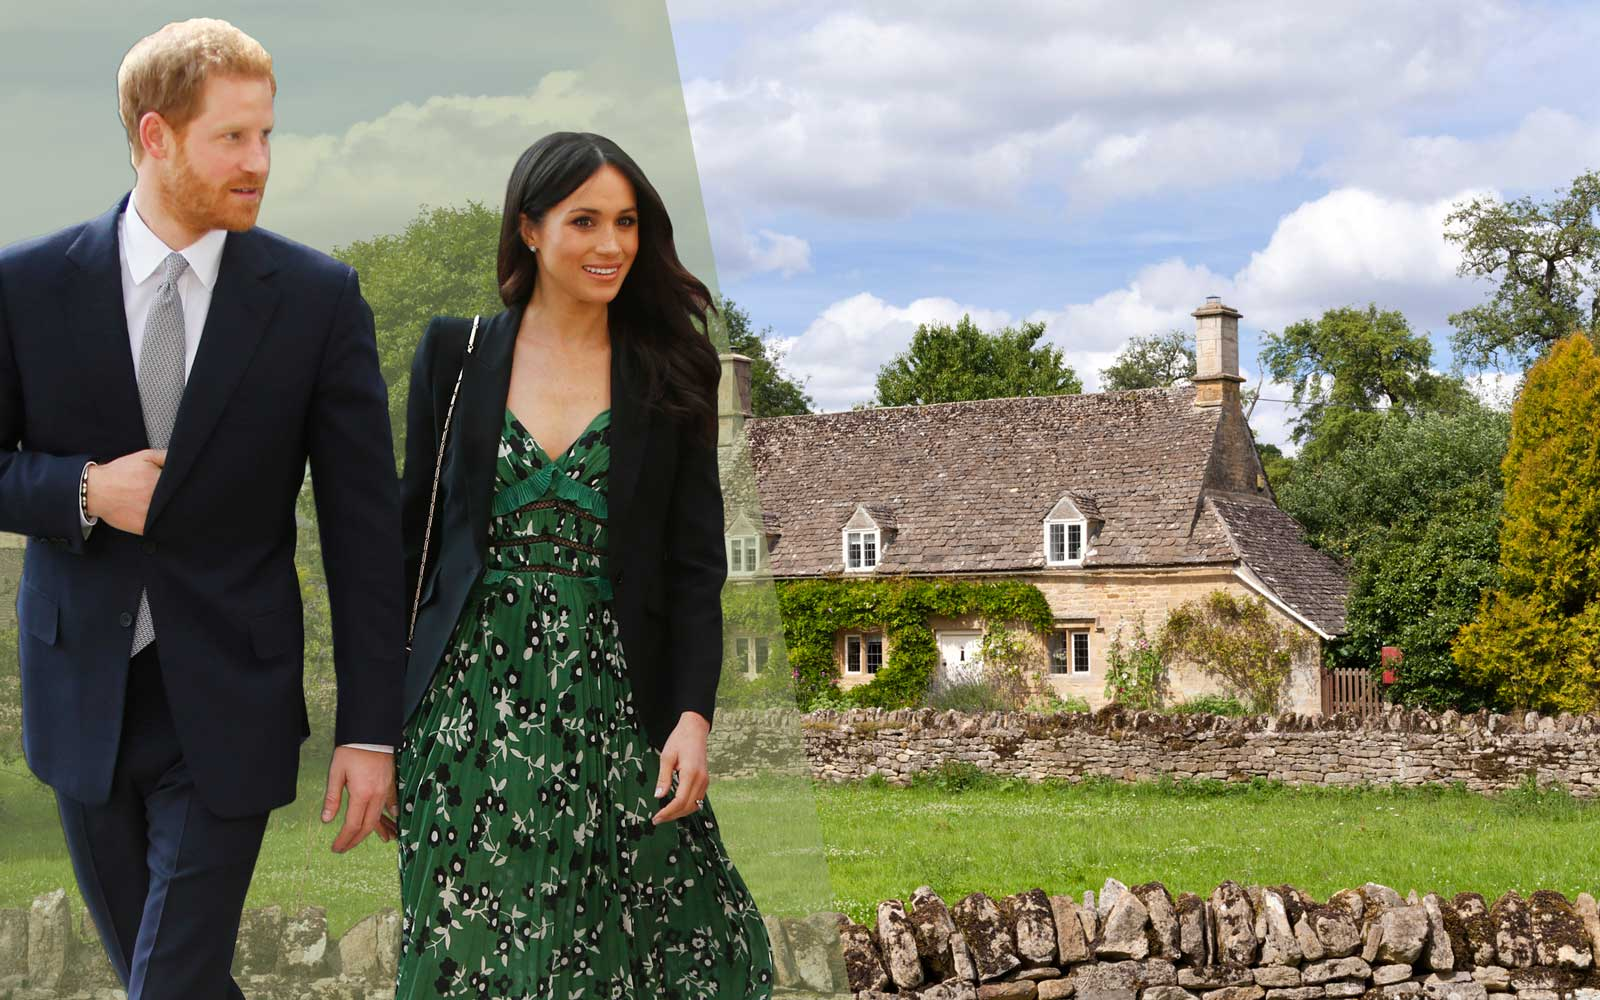 Where Prince Harry and Meghan Markle Chose to Unwind Before the Royal Wedding